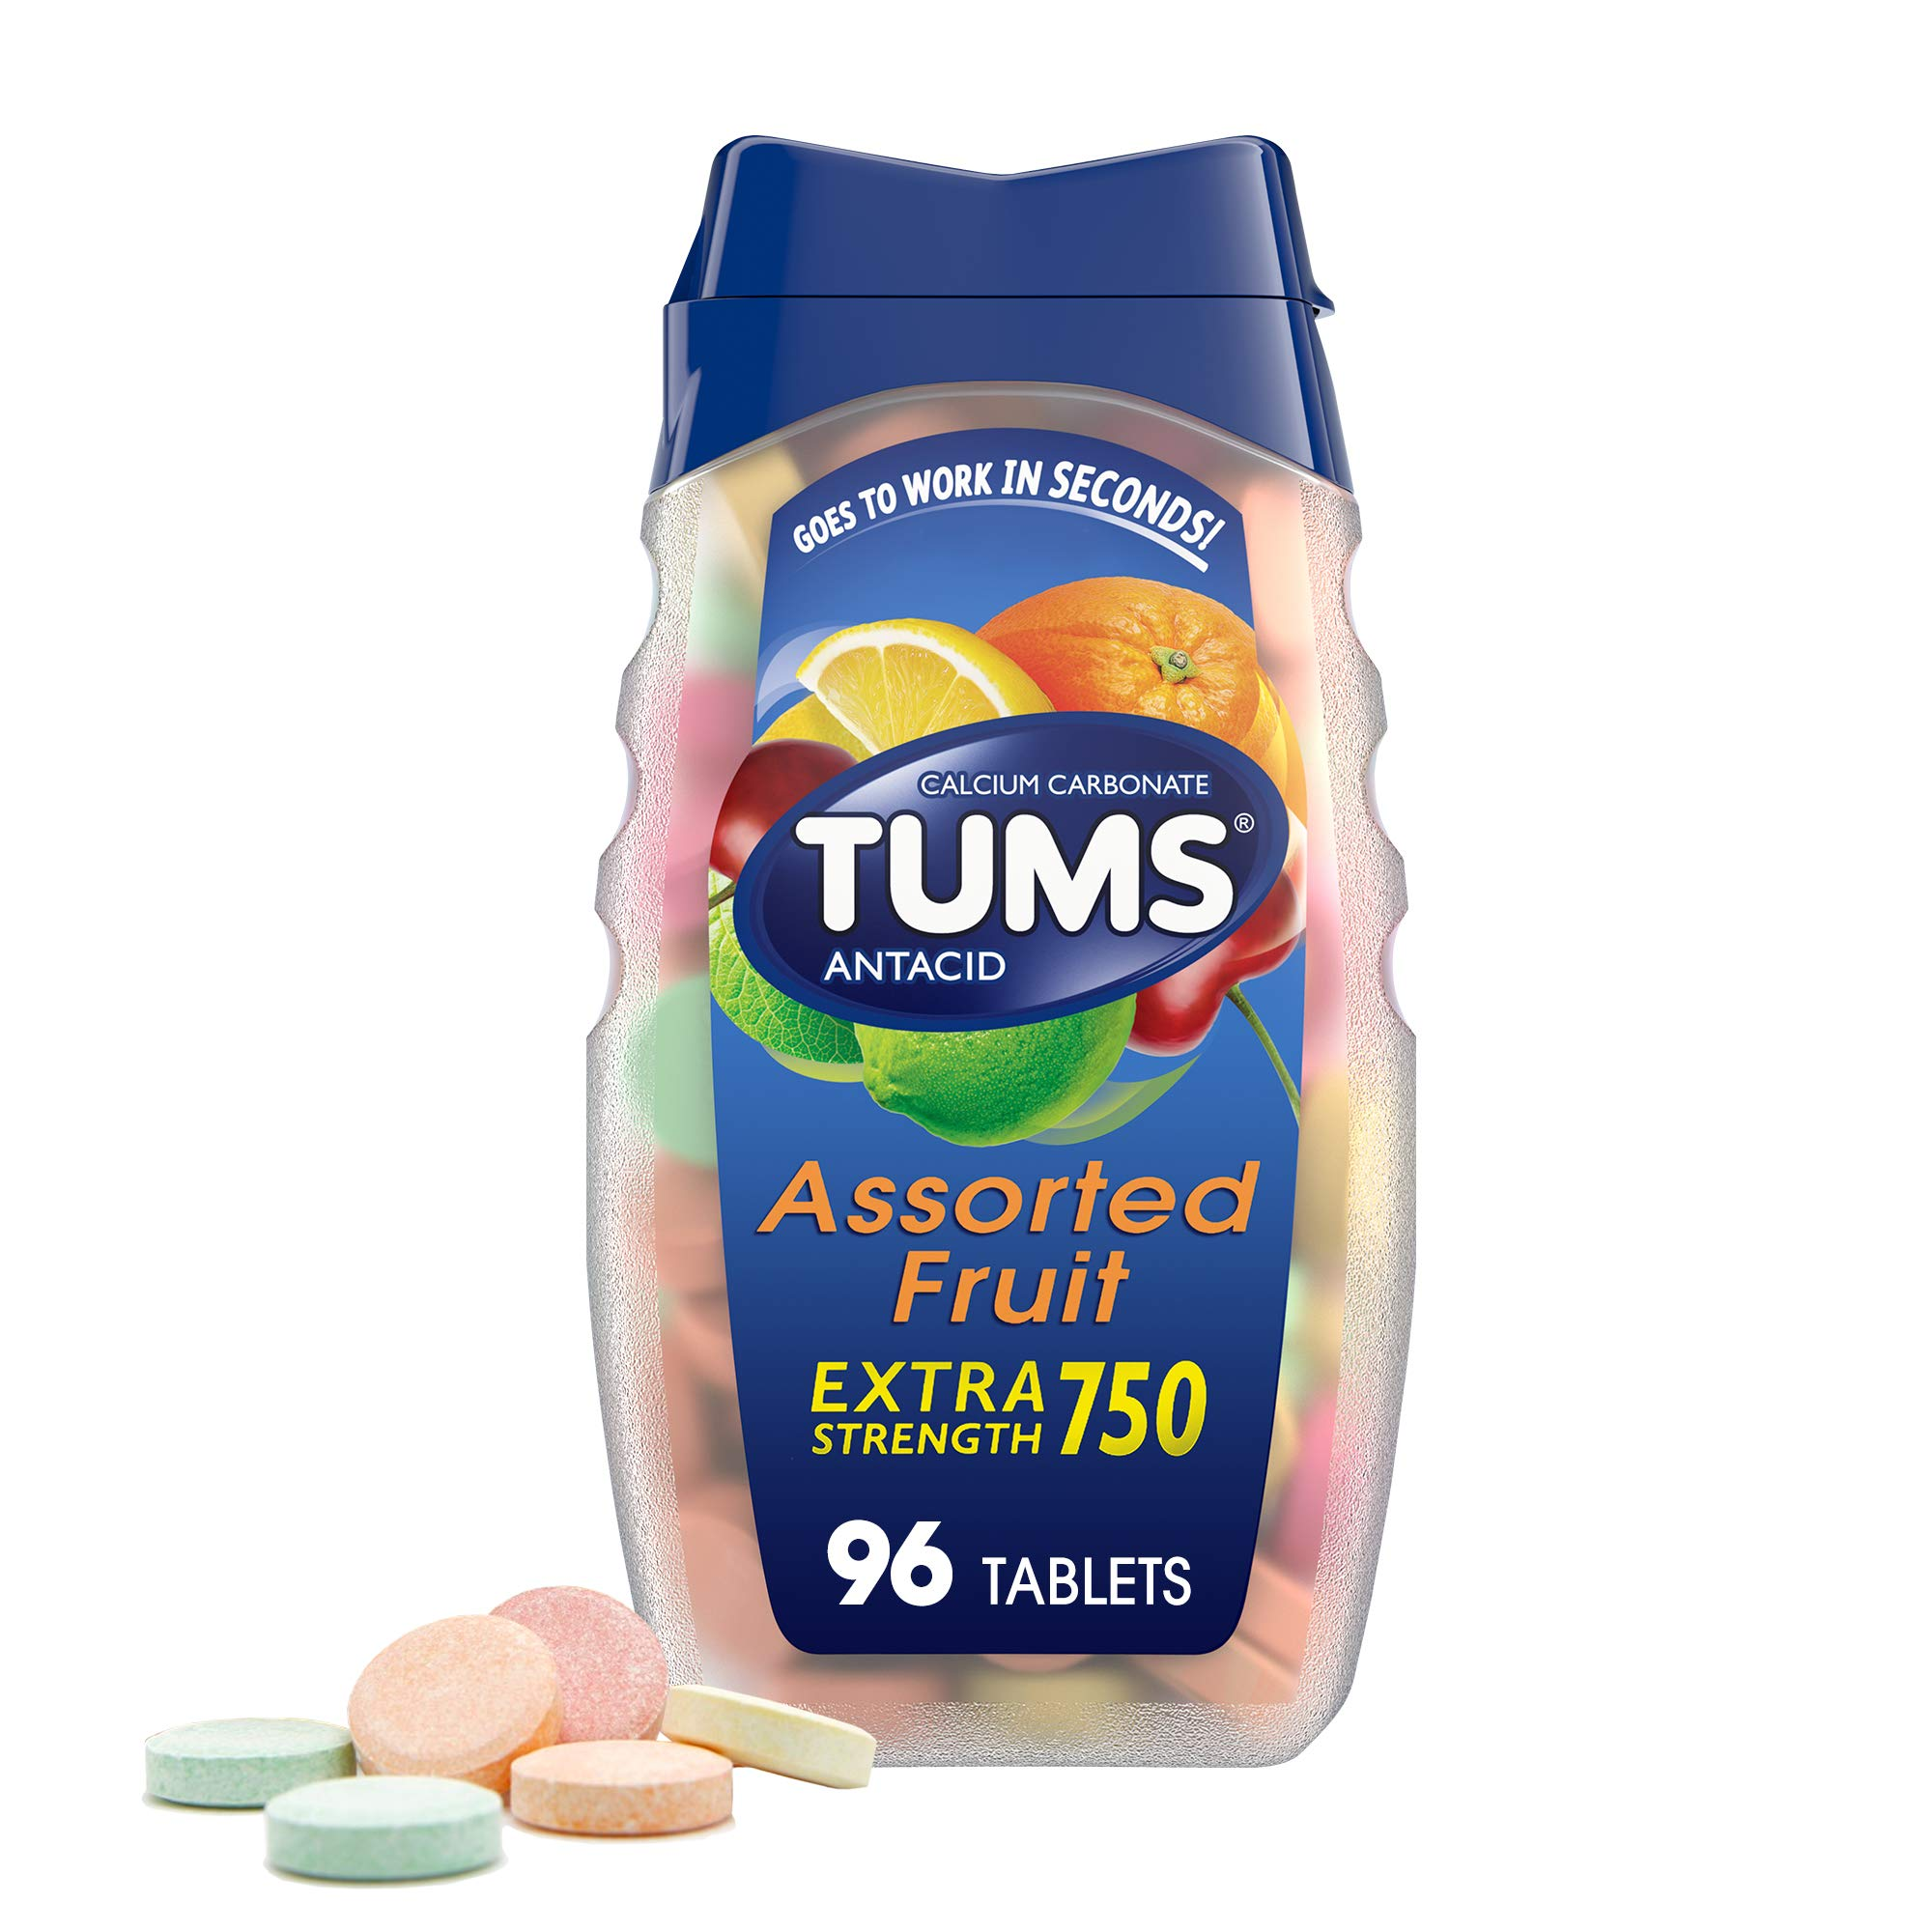 TUMS Antacid Chewable Tablets, Extra Strength for Heartburn Relief, Assorted Fruit, 96 count